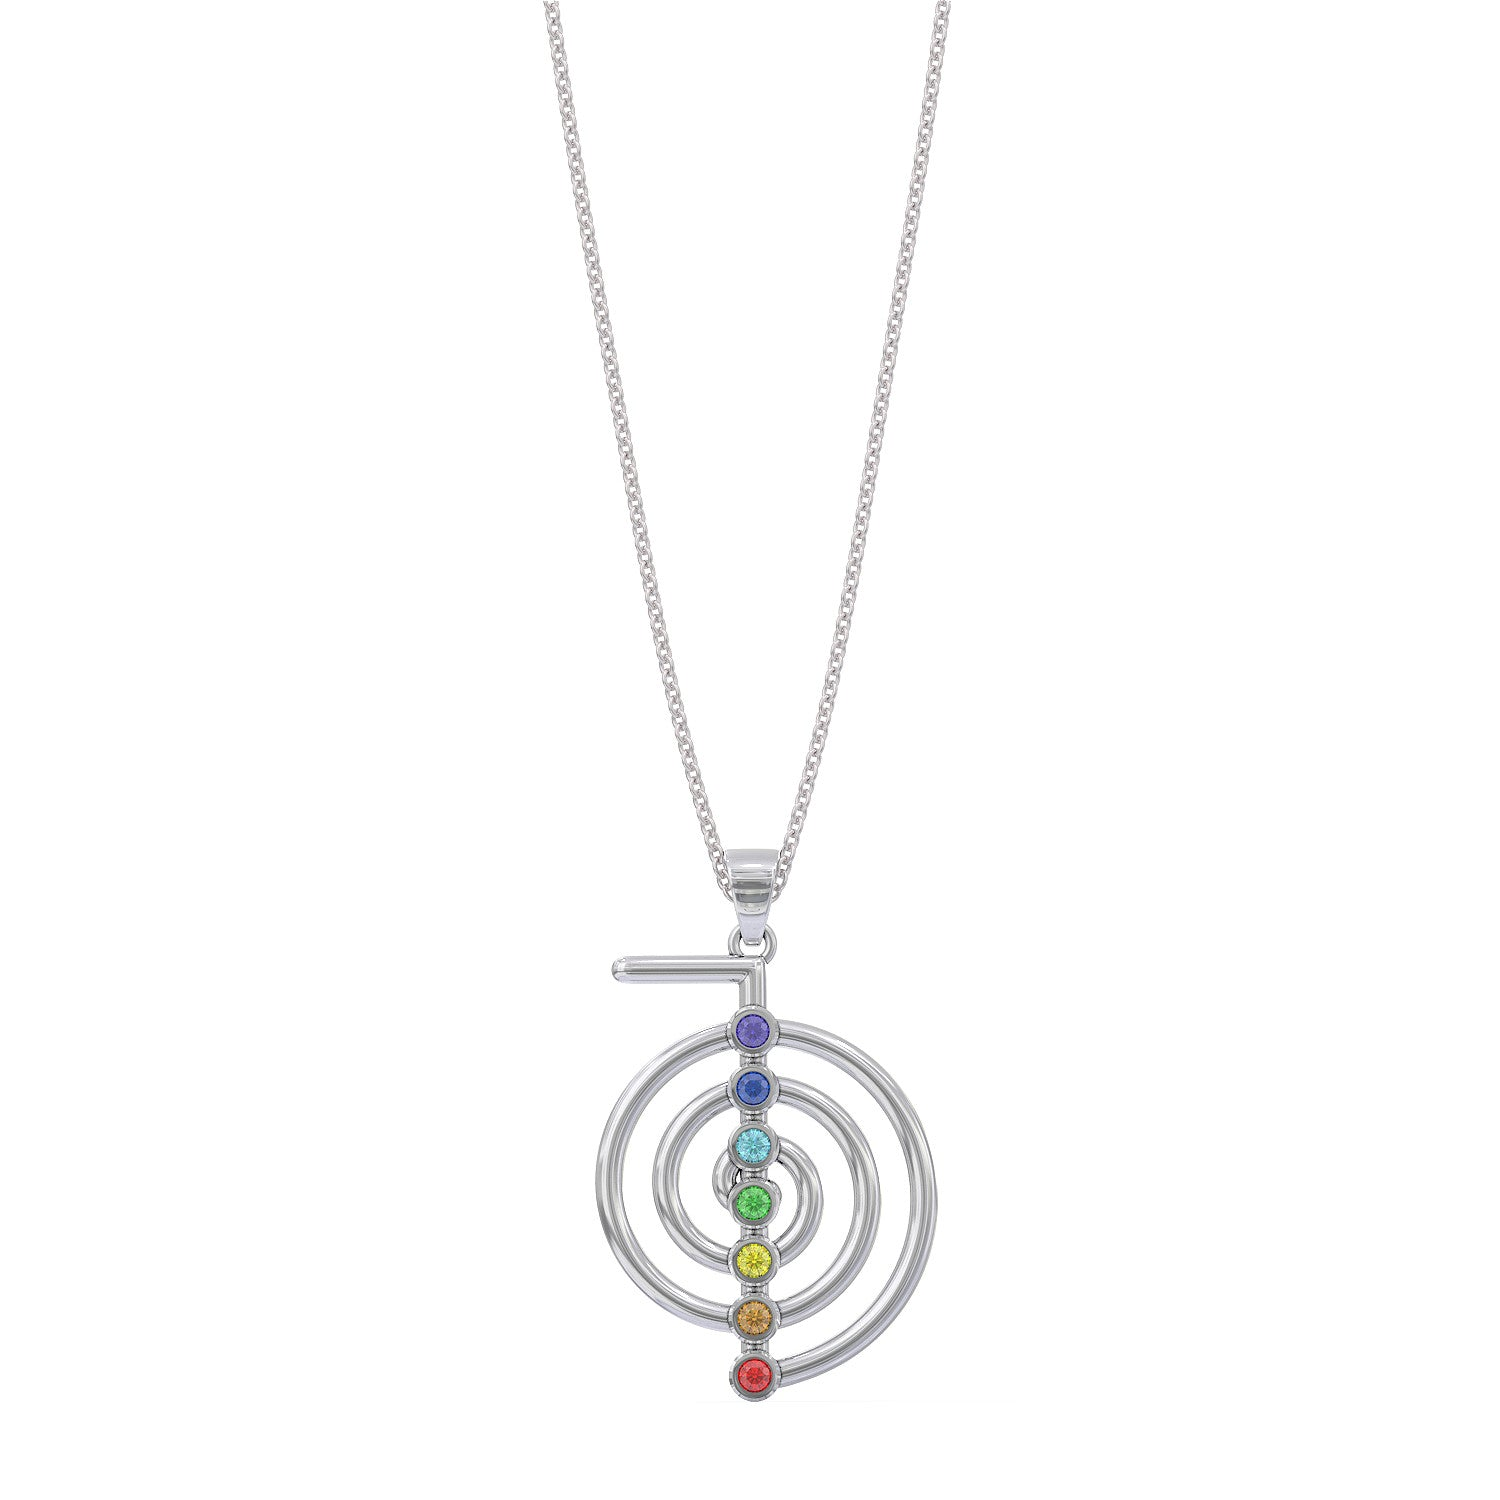 Reiki Cho Ku Rei Symbol With Chakra Stones Necklace